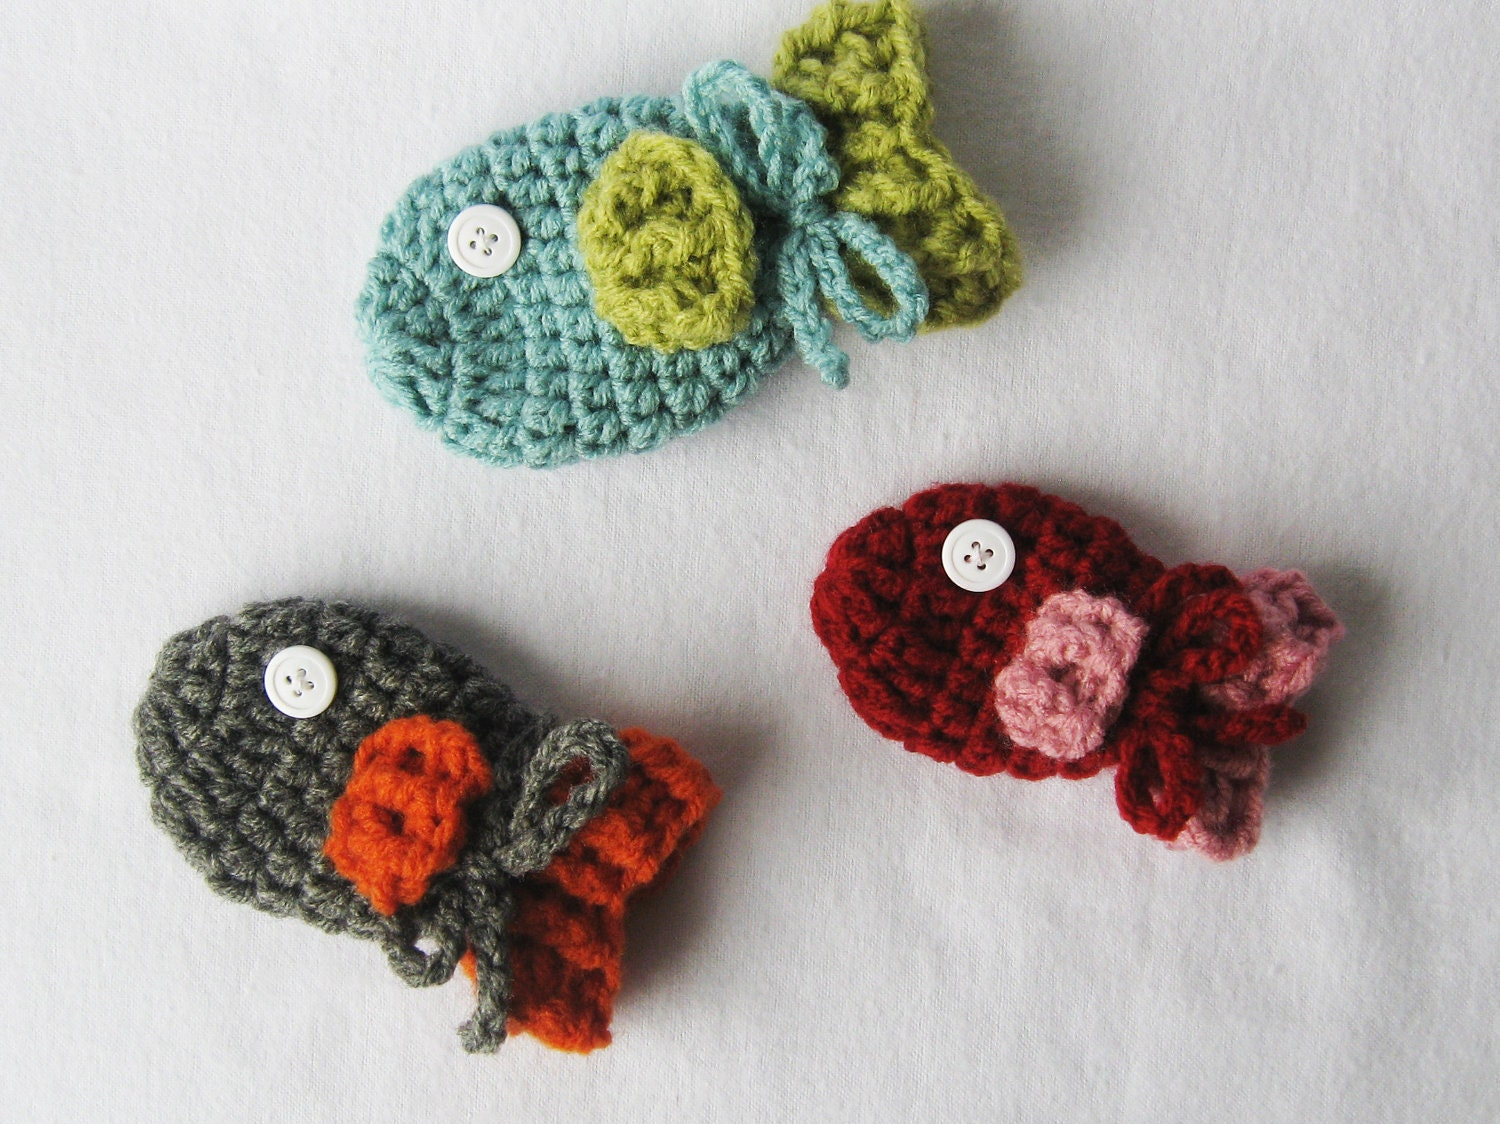 Baby crochet pattern baby fish mittens 3 sizes included from baby crochet pattern baby fish mittens 3 sizes included from newborn 24 months instant download bankloansurffo Images